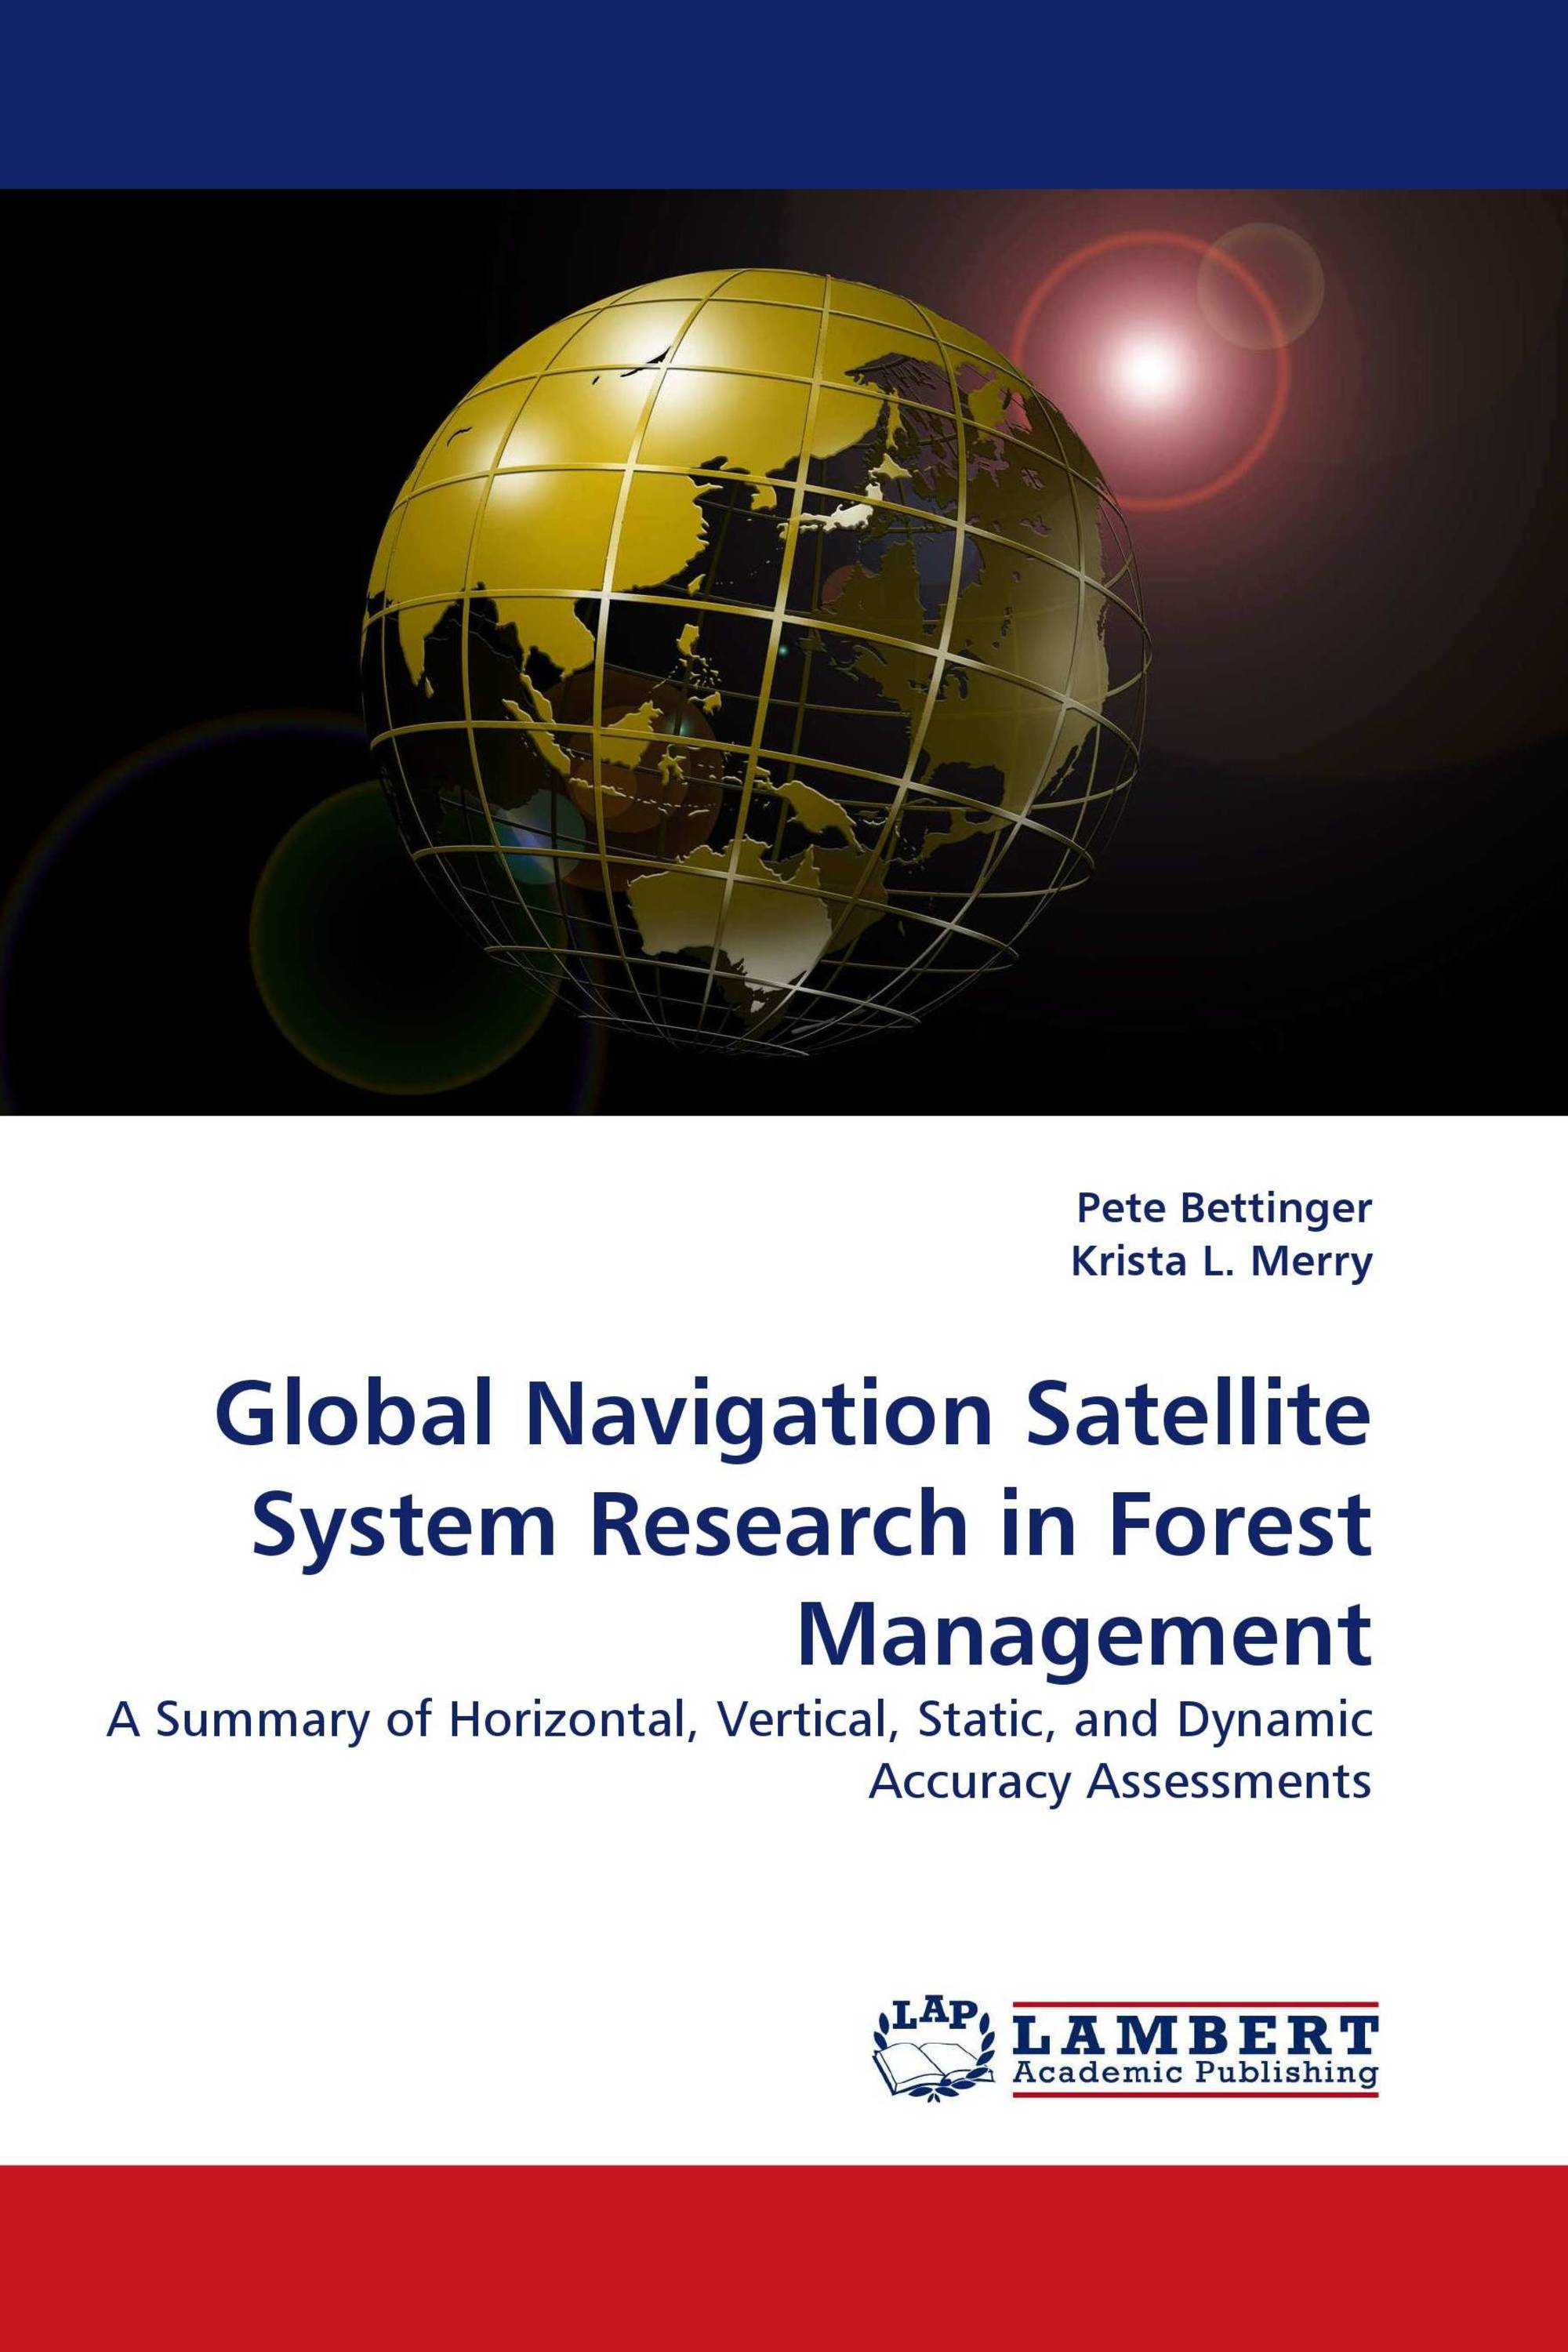 Global Navigation Satellite System Research in Forest Management